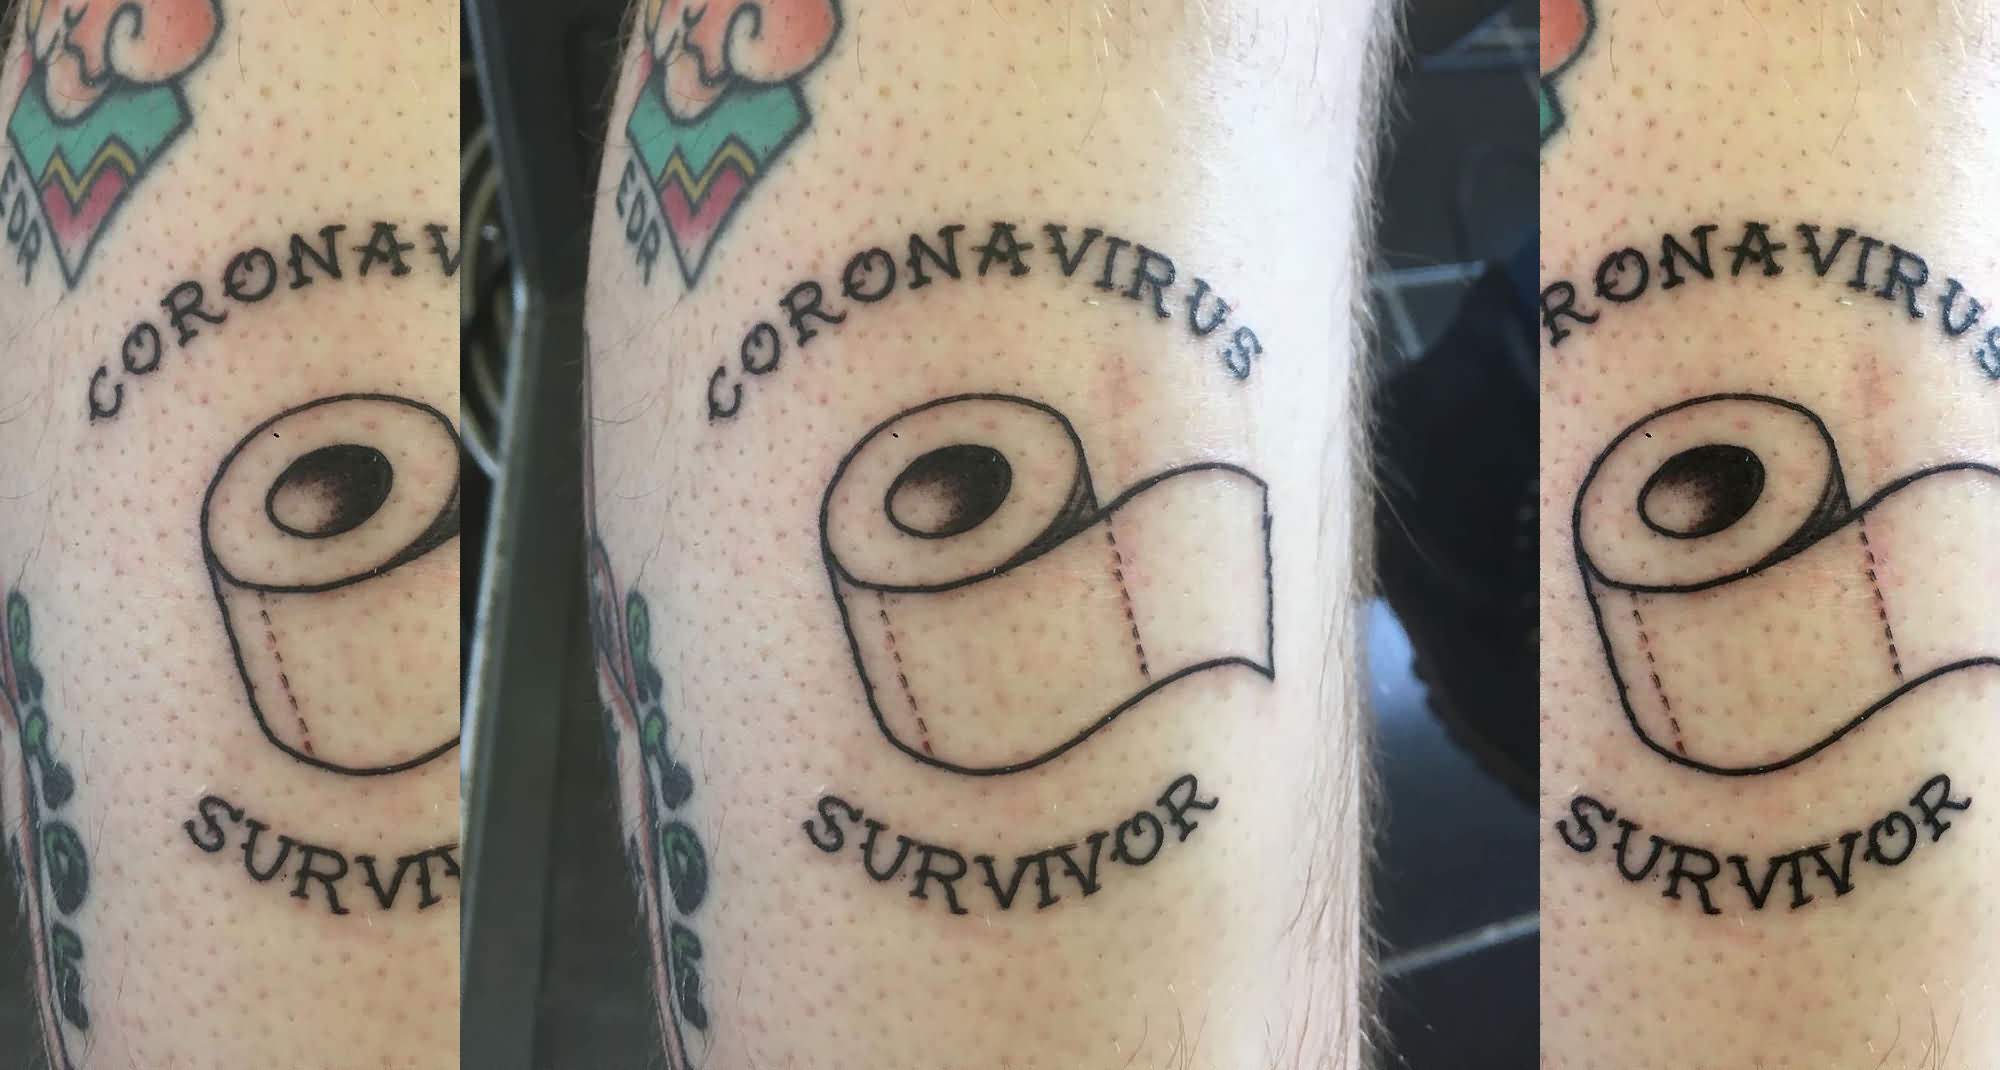 Coronavirus Tattoo For Survivor